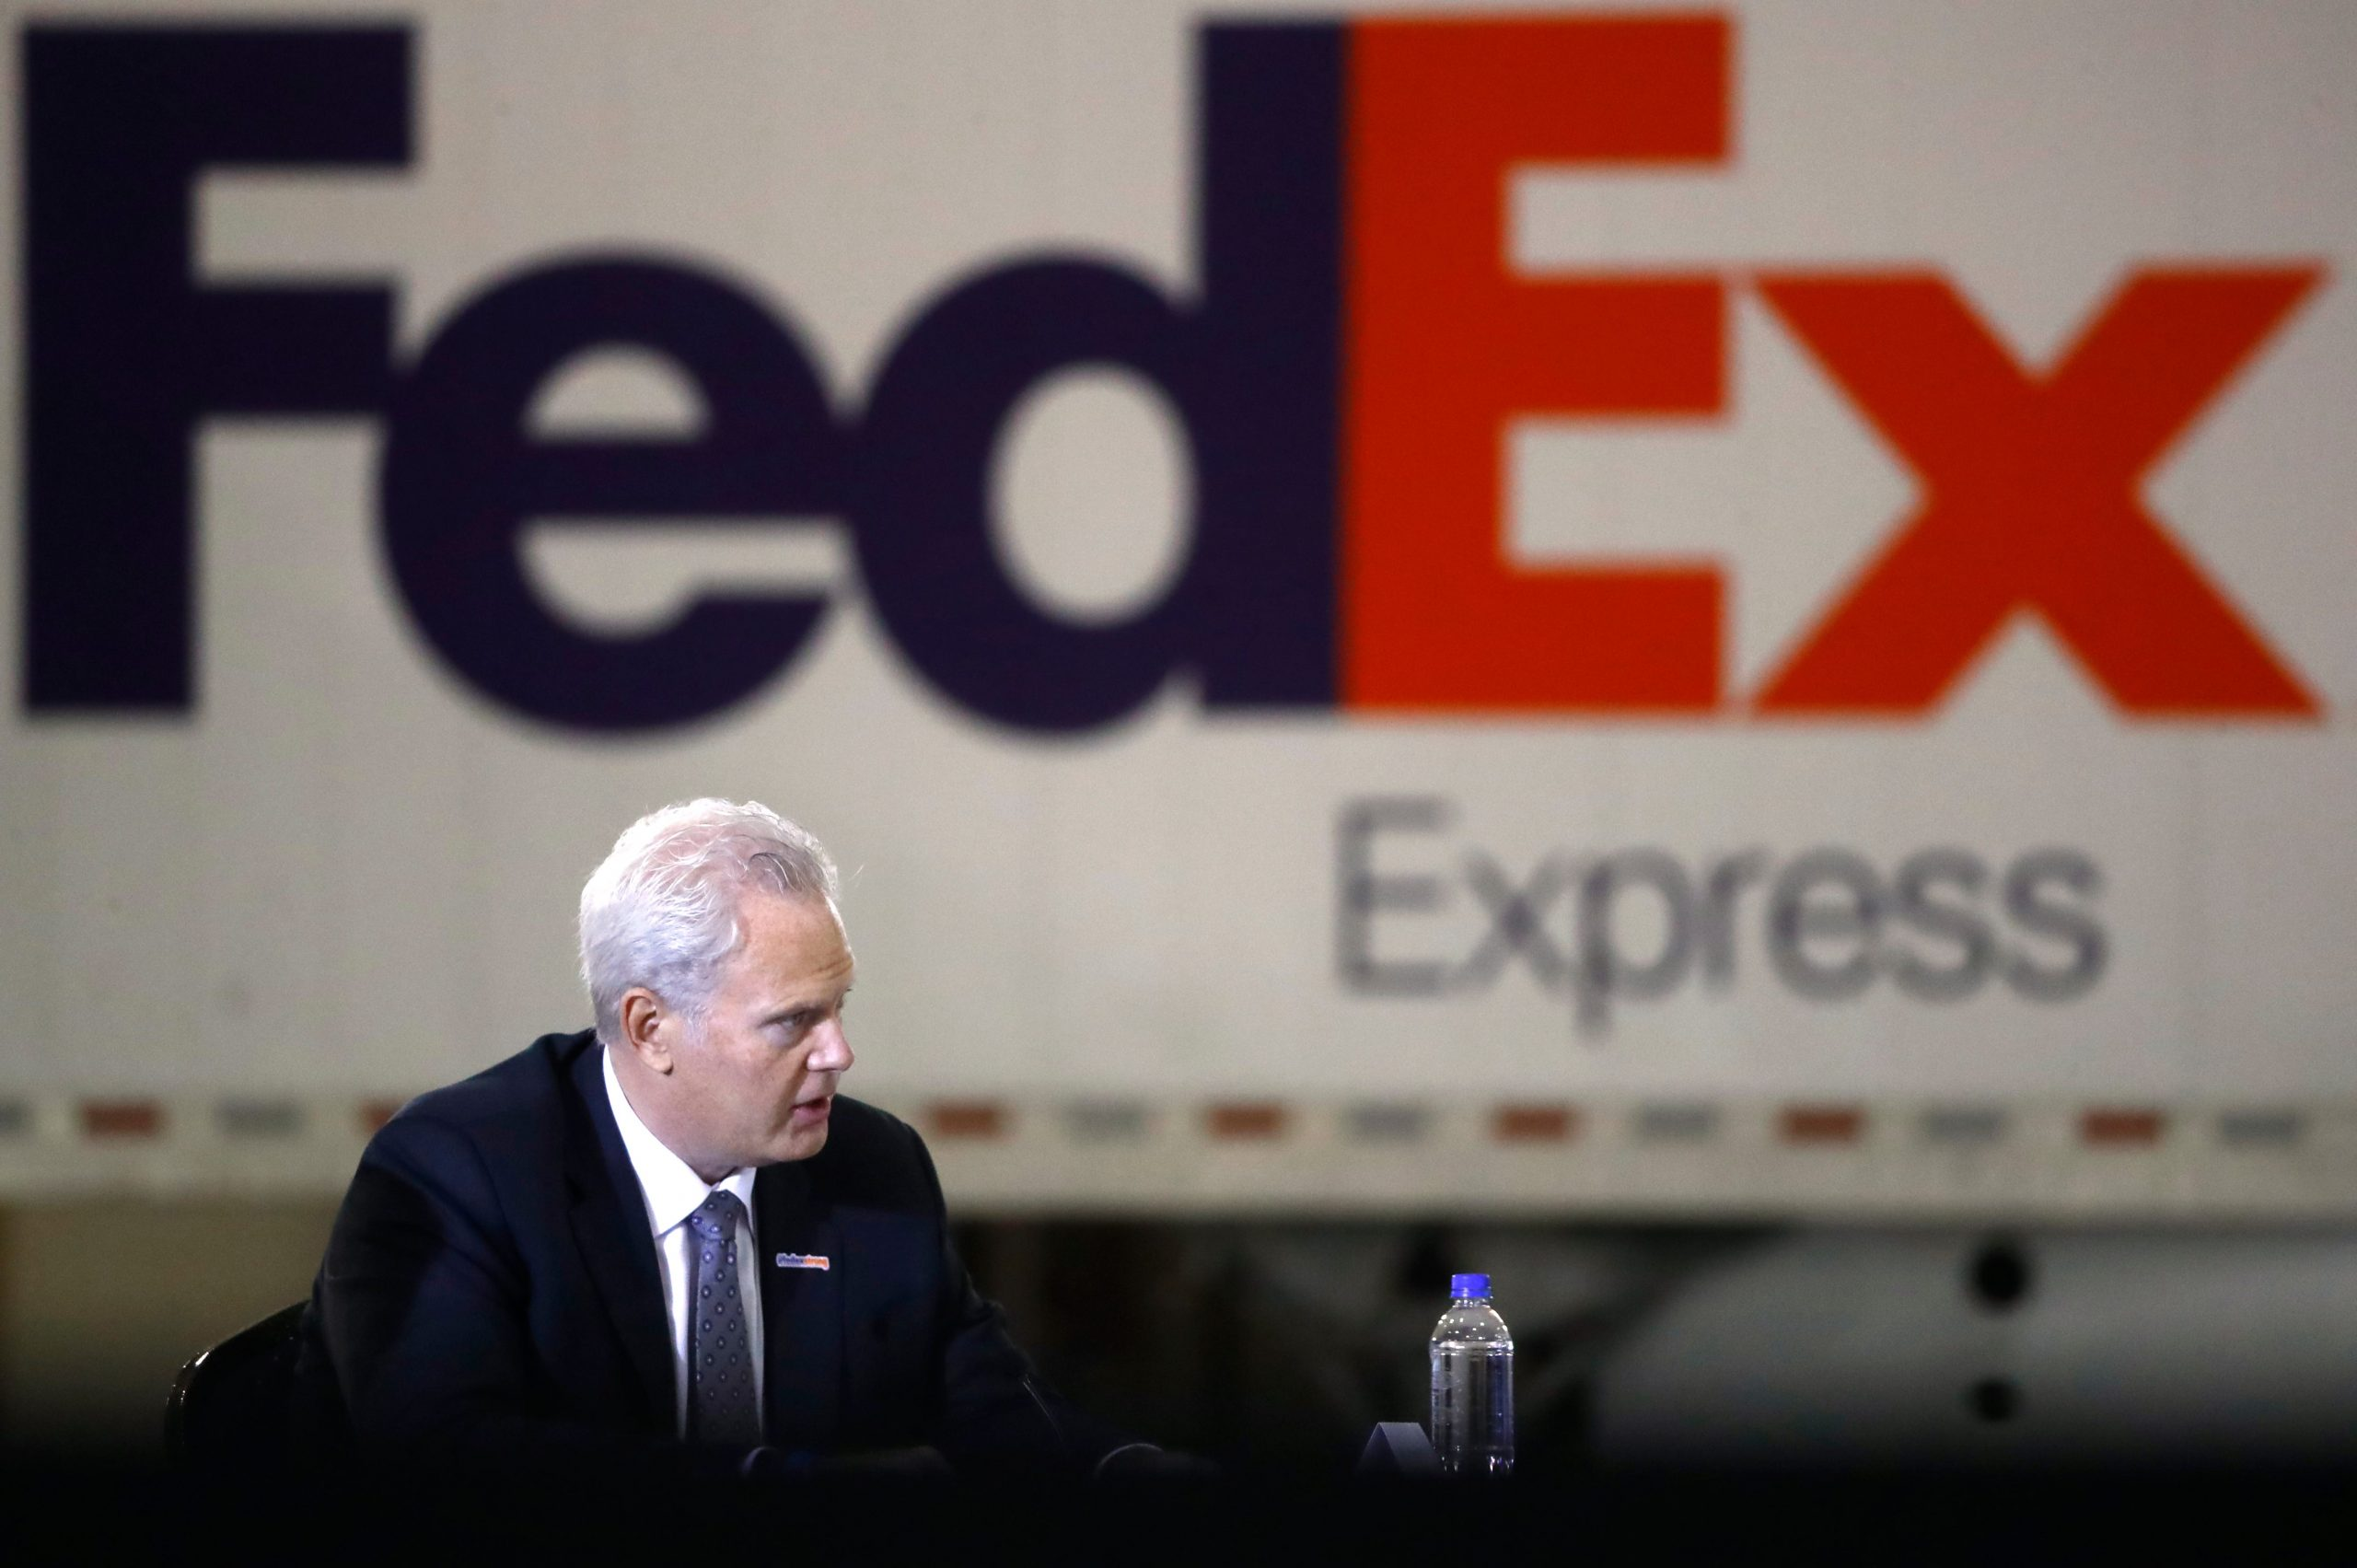 FedEx and UPS deliver on COVID-19 vaccine shipments, but mission still sees slowdowns